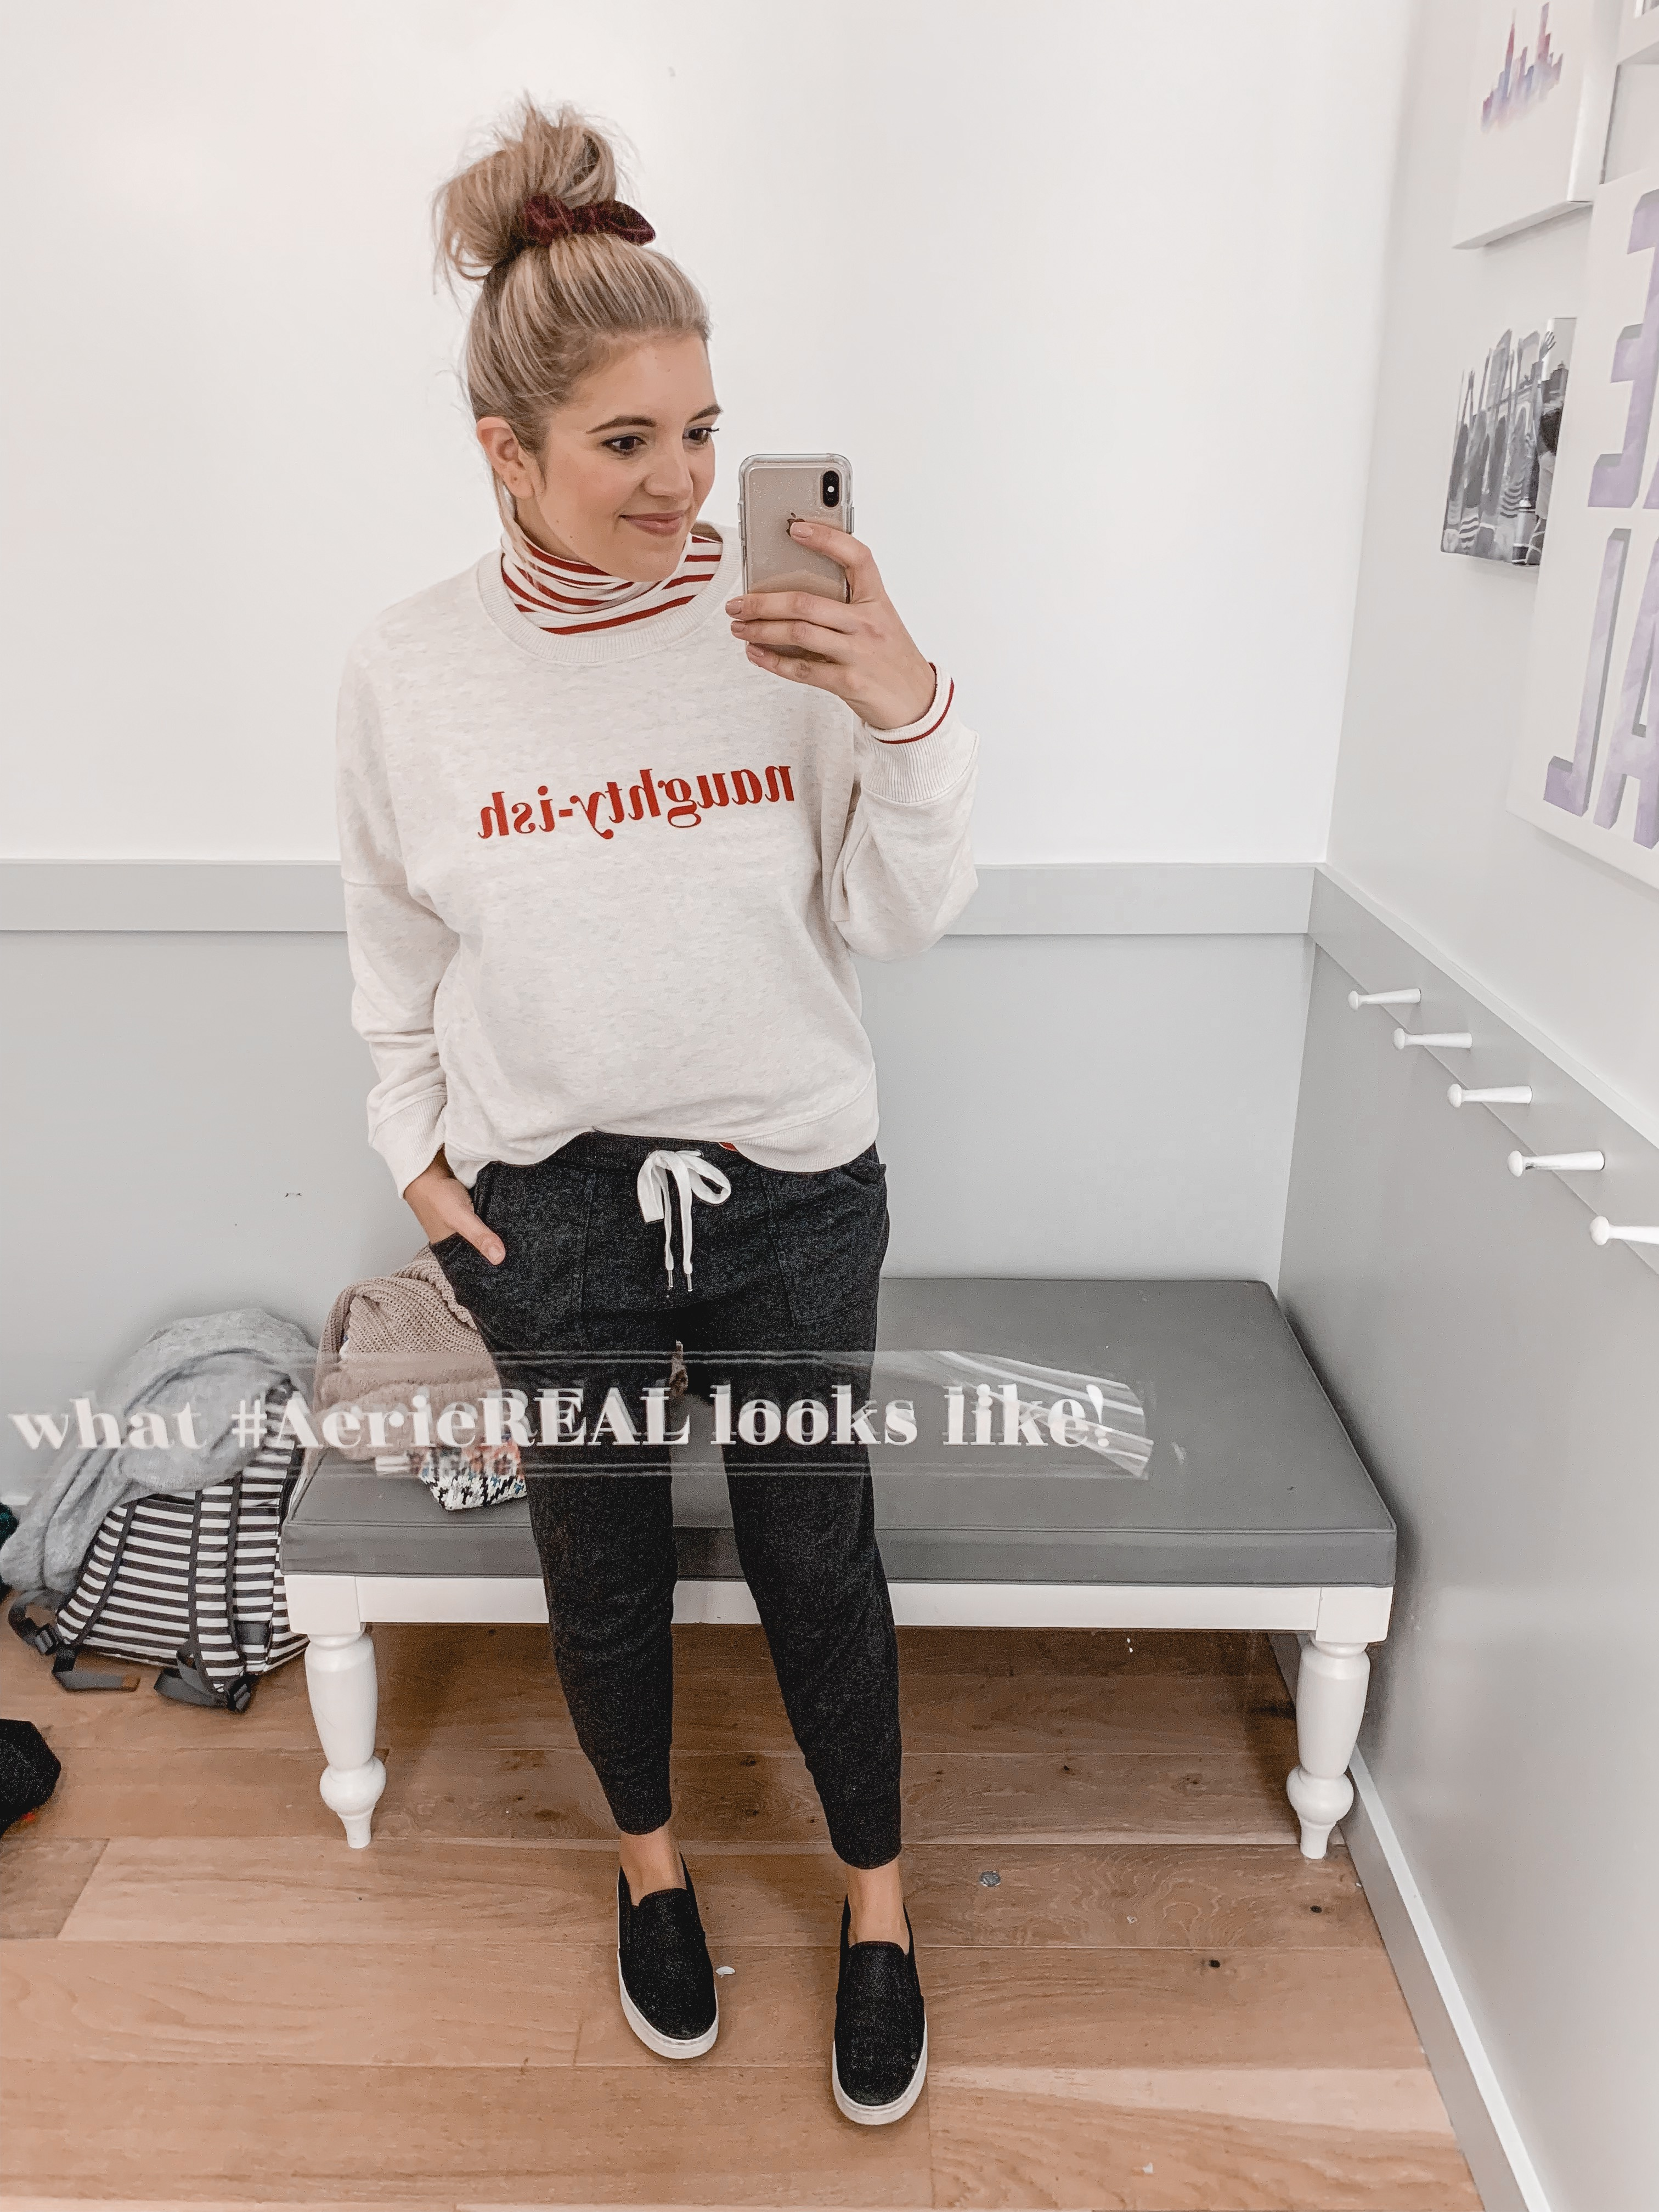 fall and winter aerie try-on session: 25 items reviewed for fit and style! See them all at bylaurenm.com